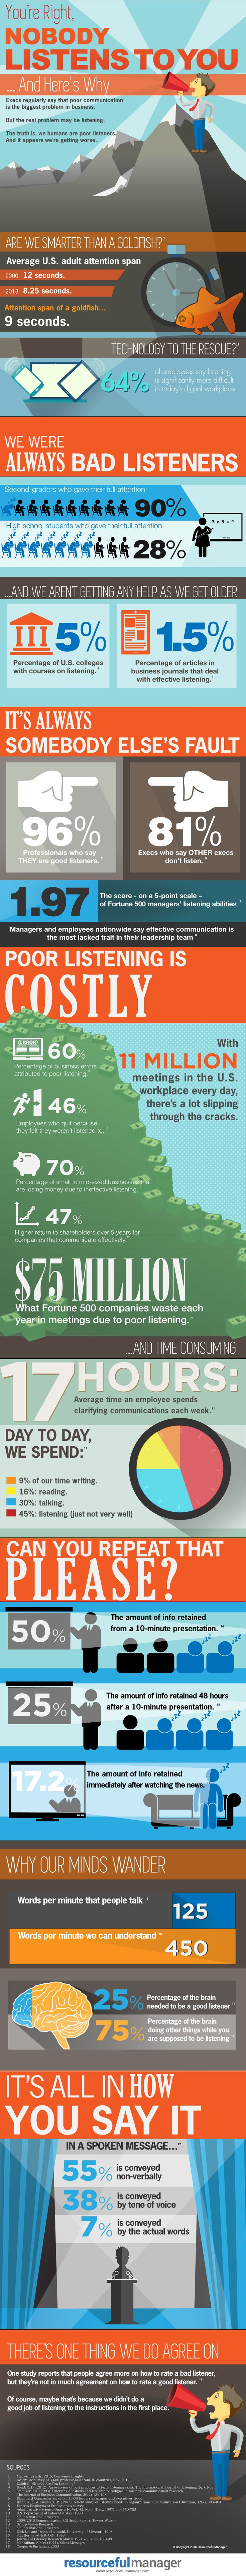 You're Right. Nobody Listens To You [Infographic]